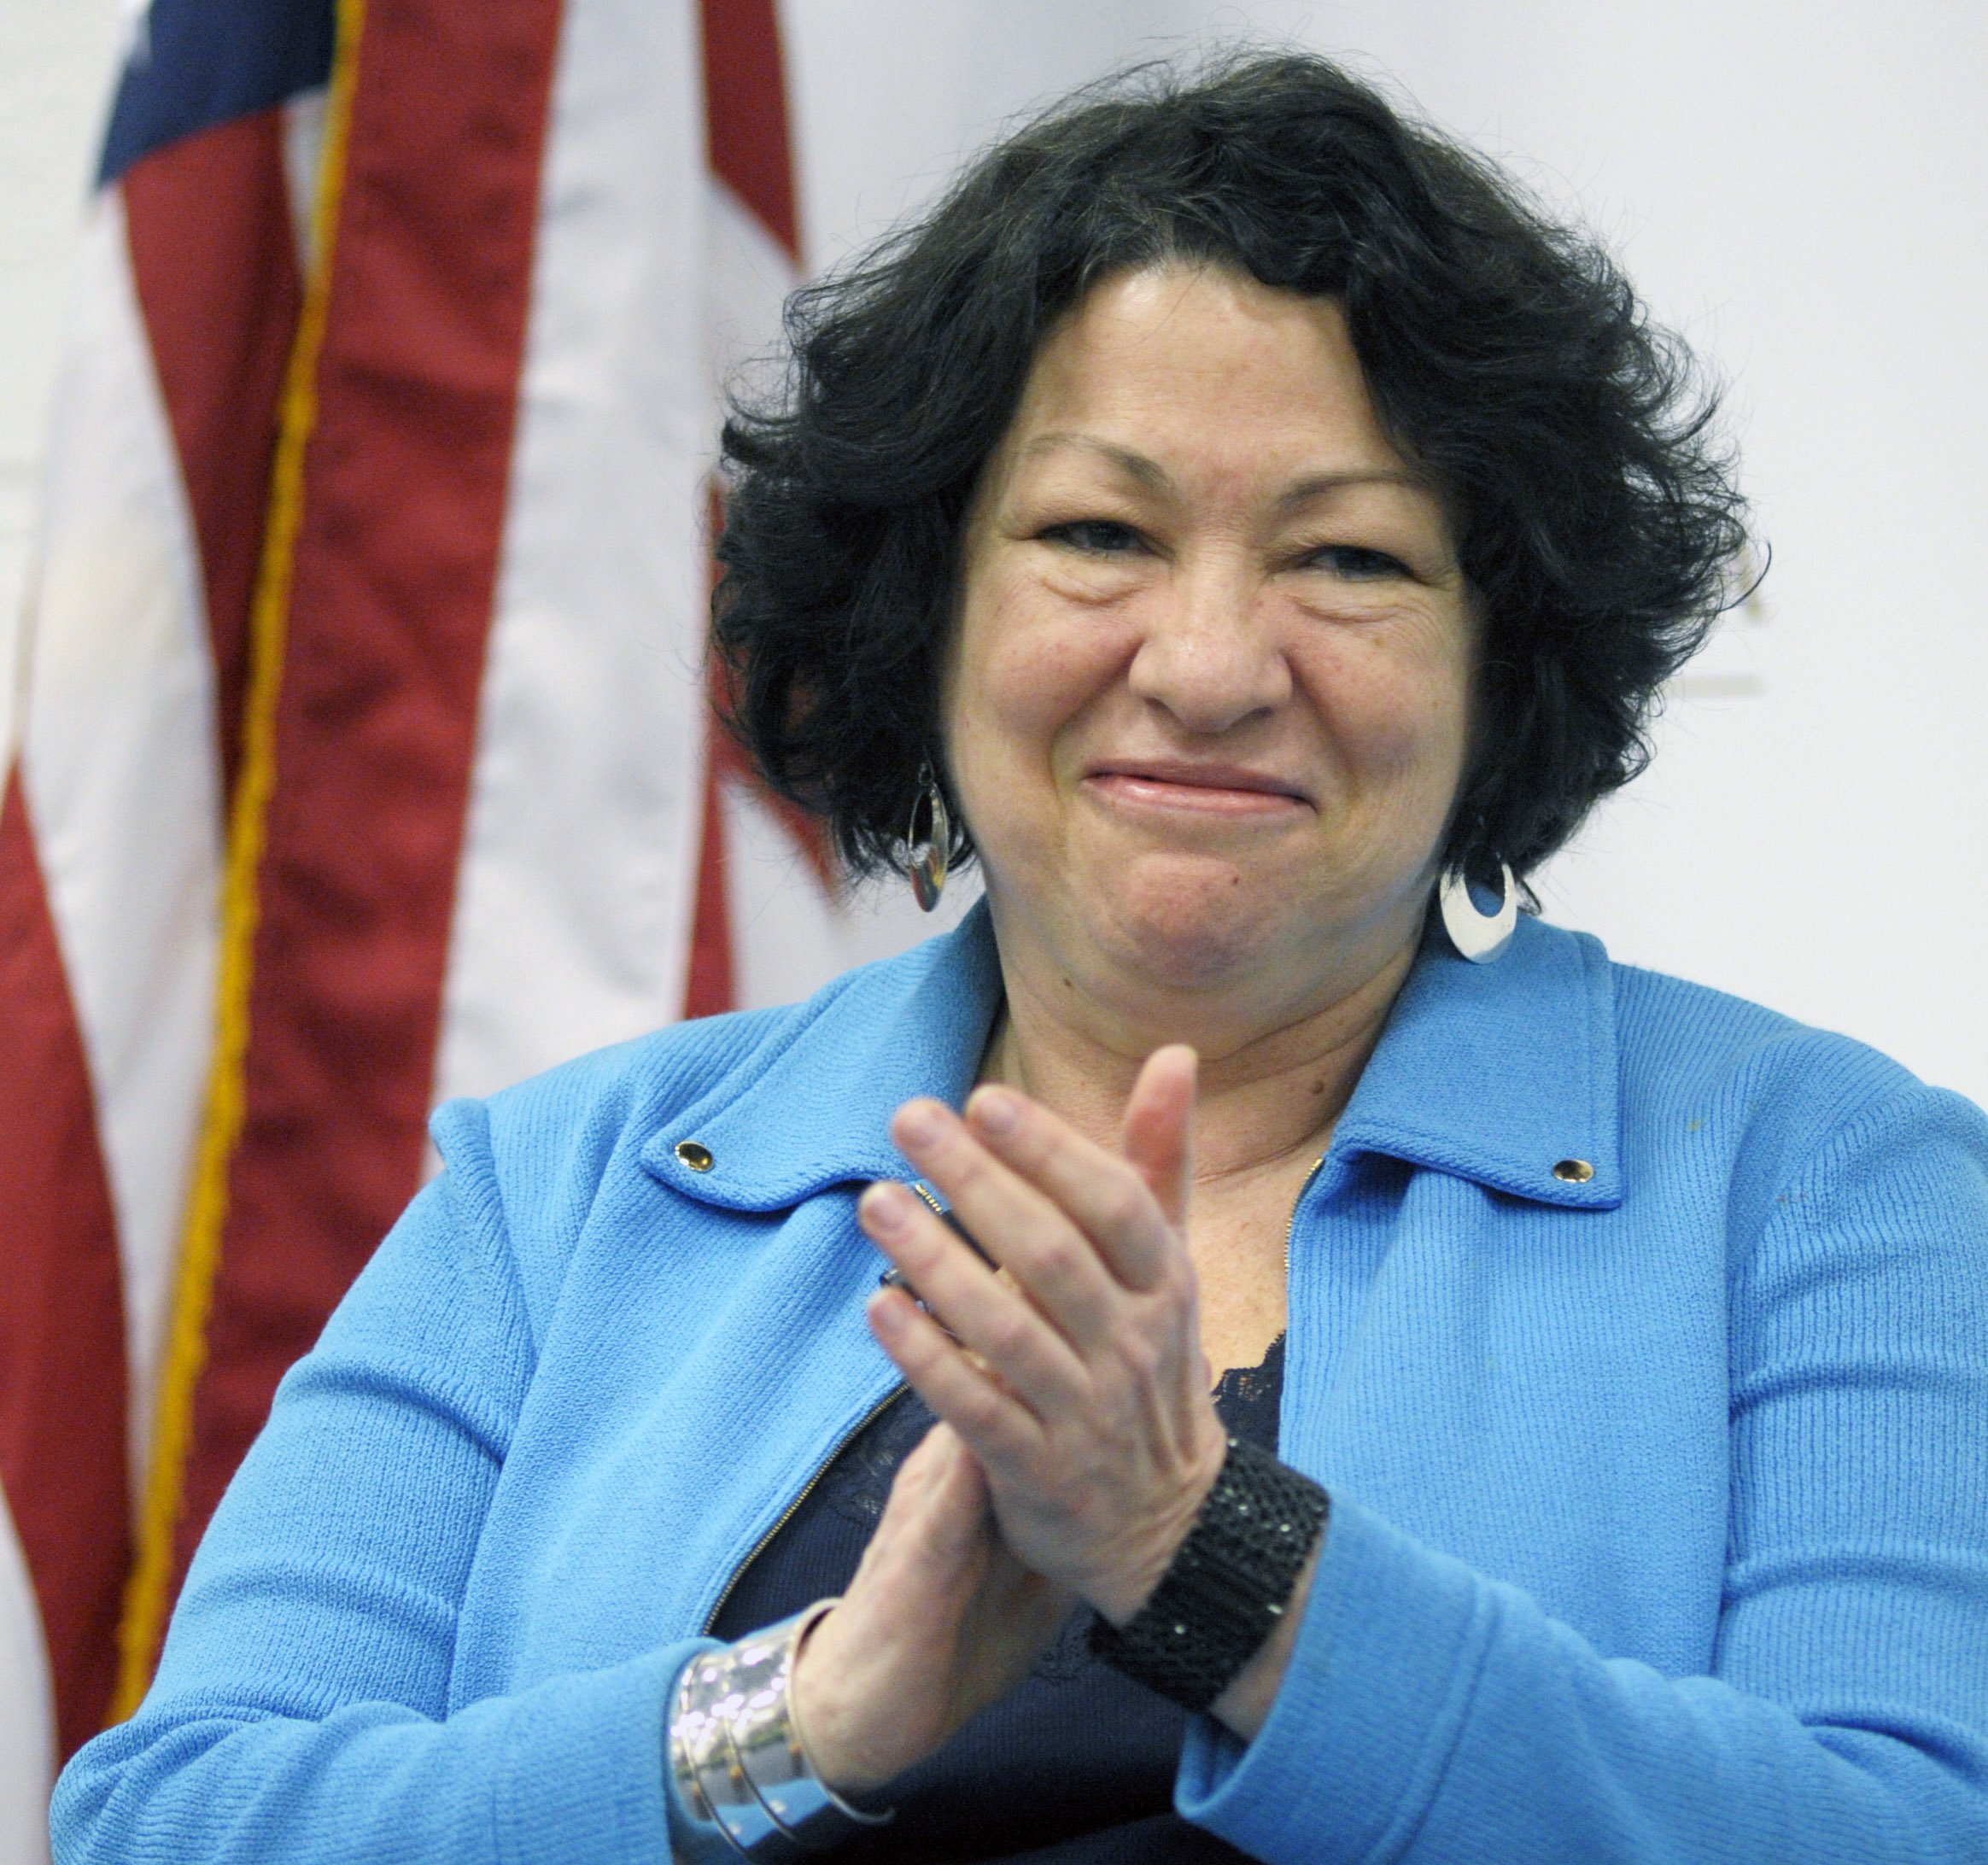 Supreme Court Associate Justice Sonia Sotomayor in Washington on April 2, 2012.